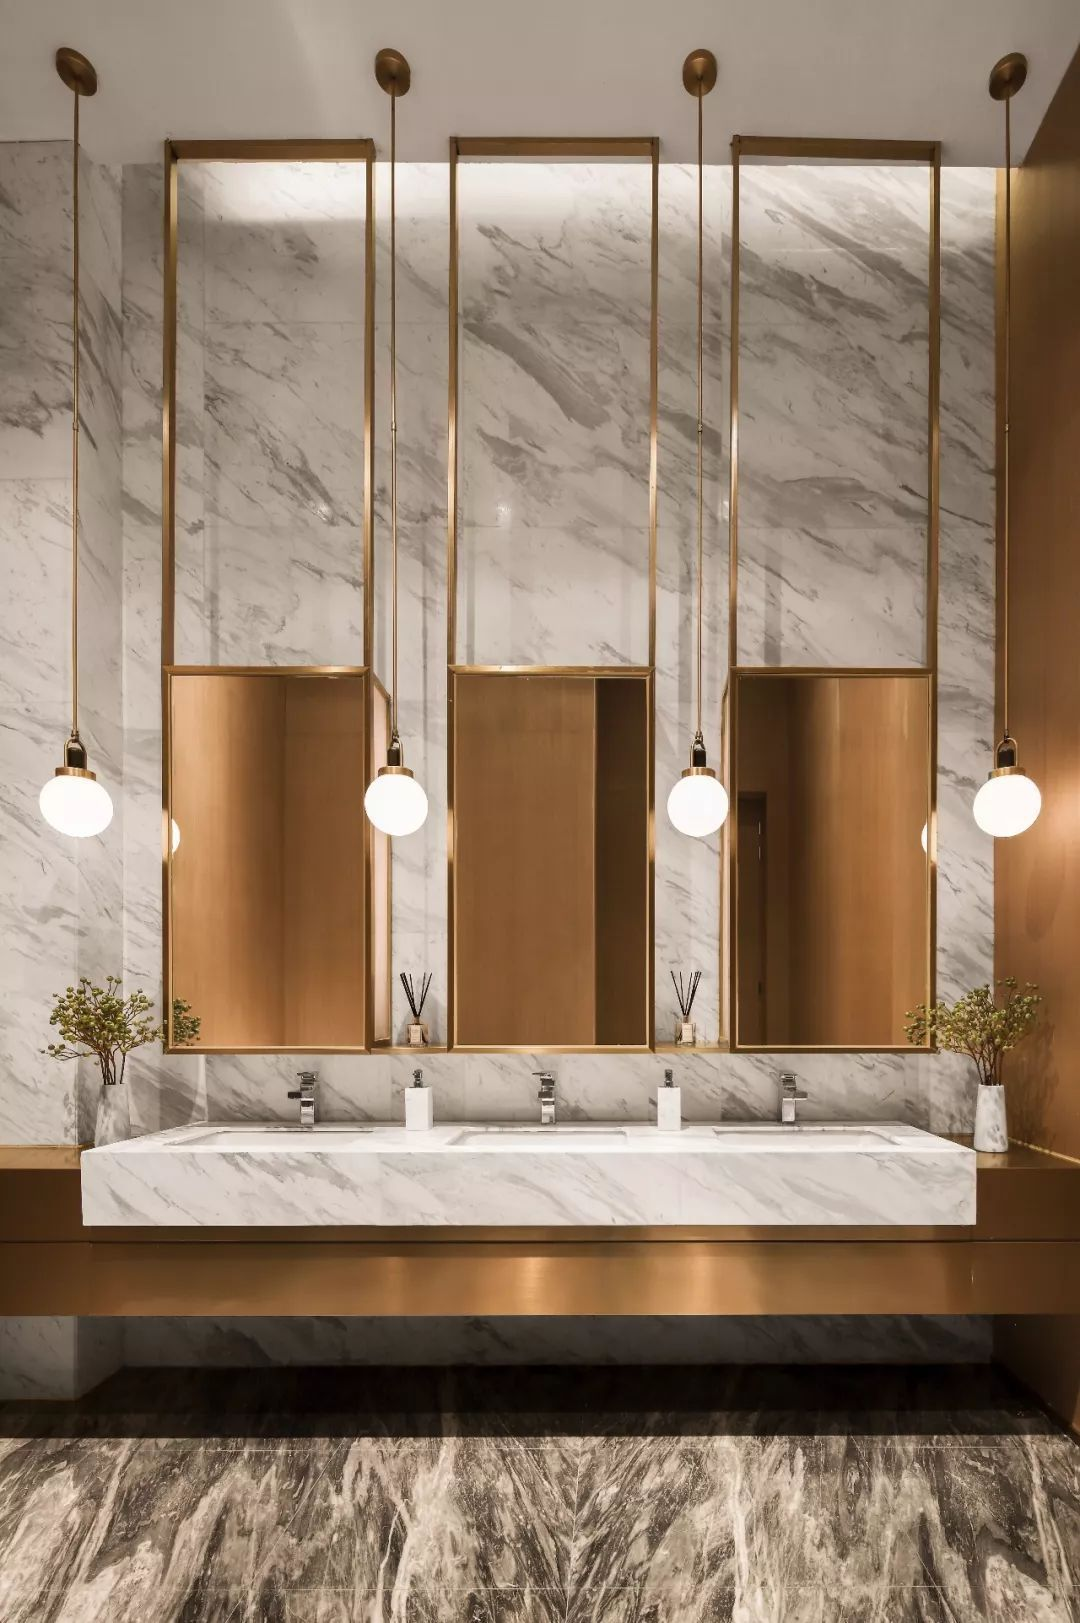 Find Out The Best Luxury Bathroom Lighting Design Selection For Your Next Interior Design Project Restroom Design Toilet Design Modern Bathroom Lighting Design